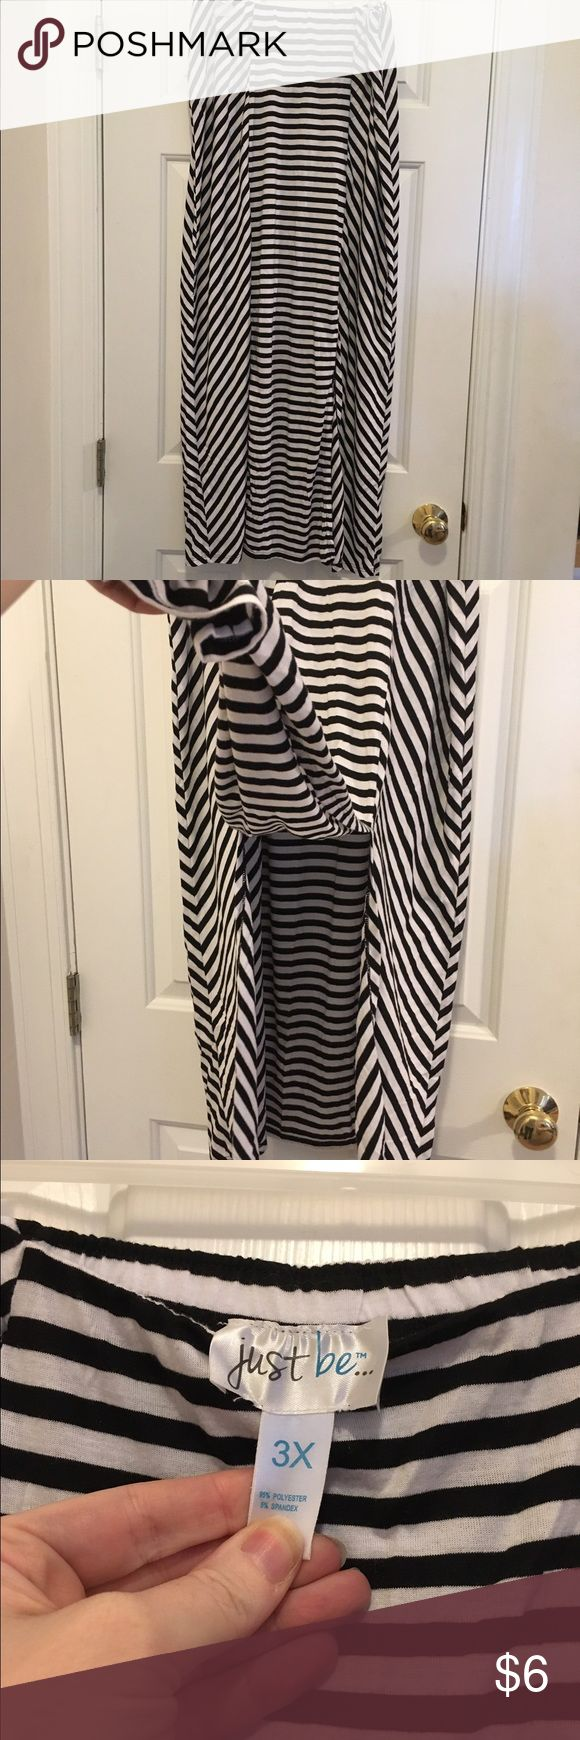 Cute maxi skirt with front slits Cute plus size black and white striped skirt with 2 slits in the front, good condition and gently used. just be Skirts Maxi